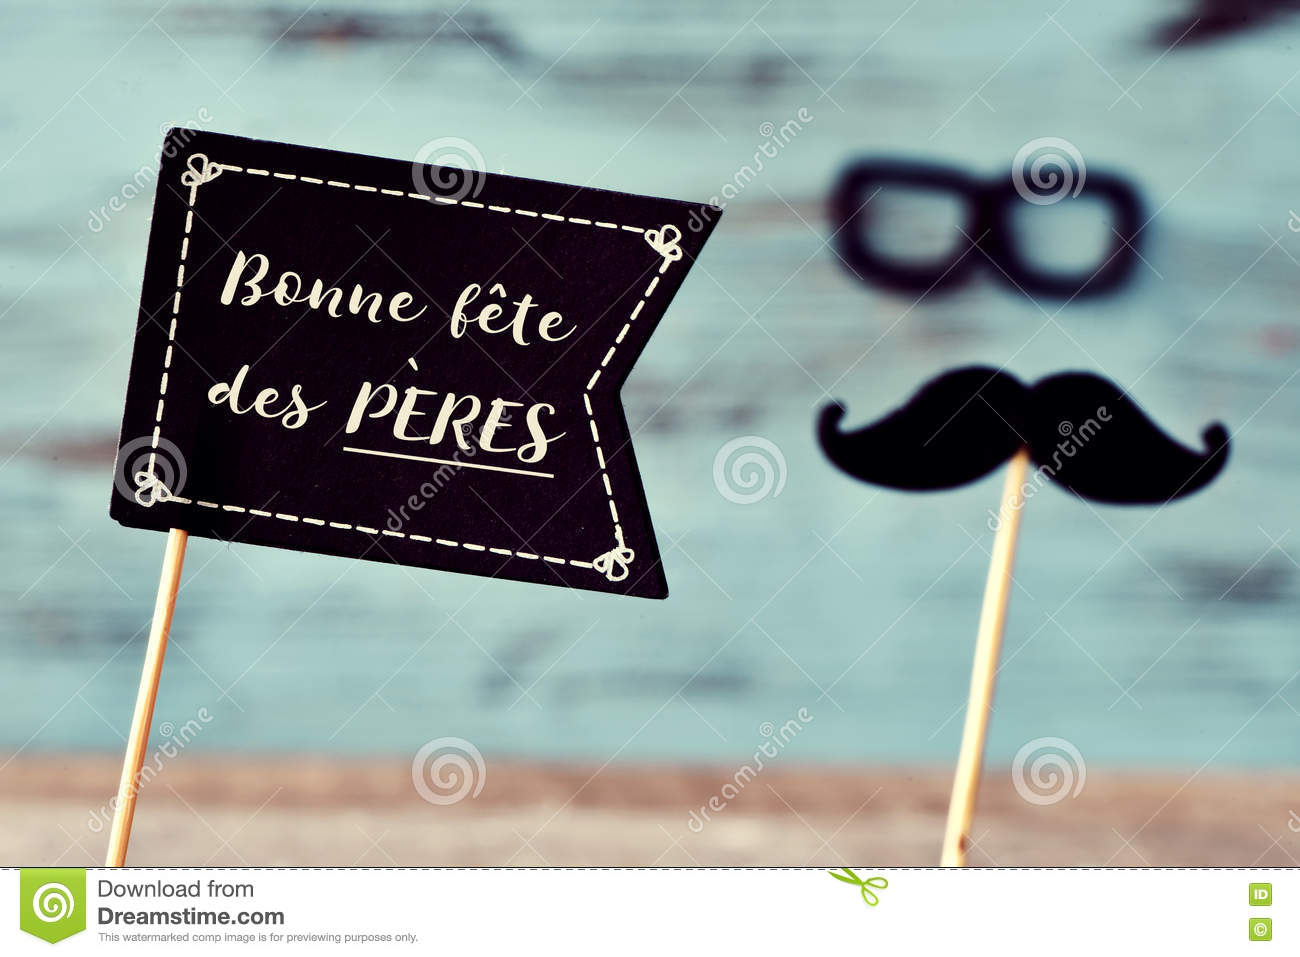 Text bonne fete des peres, happy fathers day in french